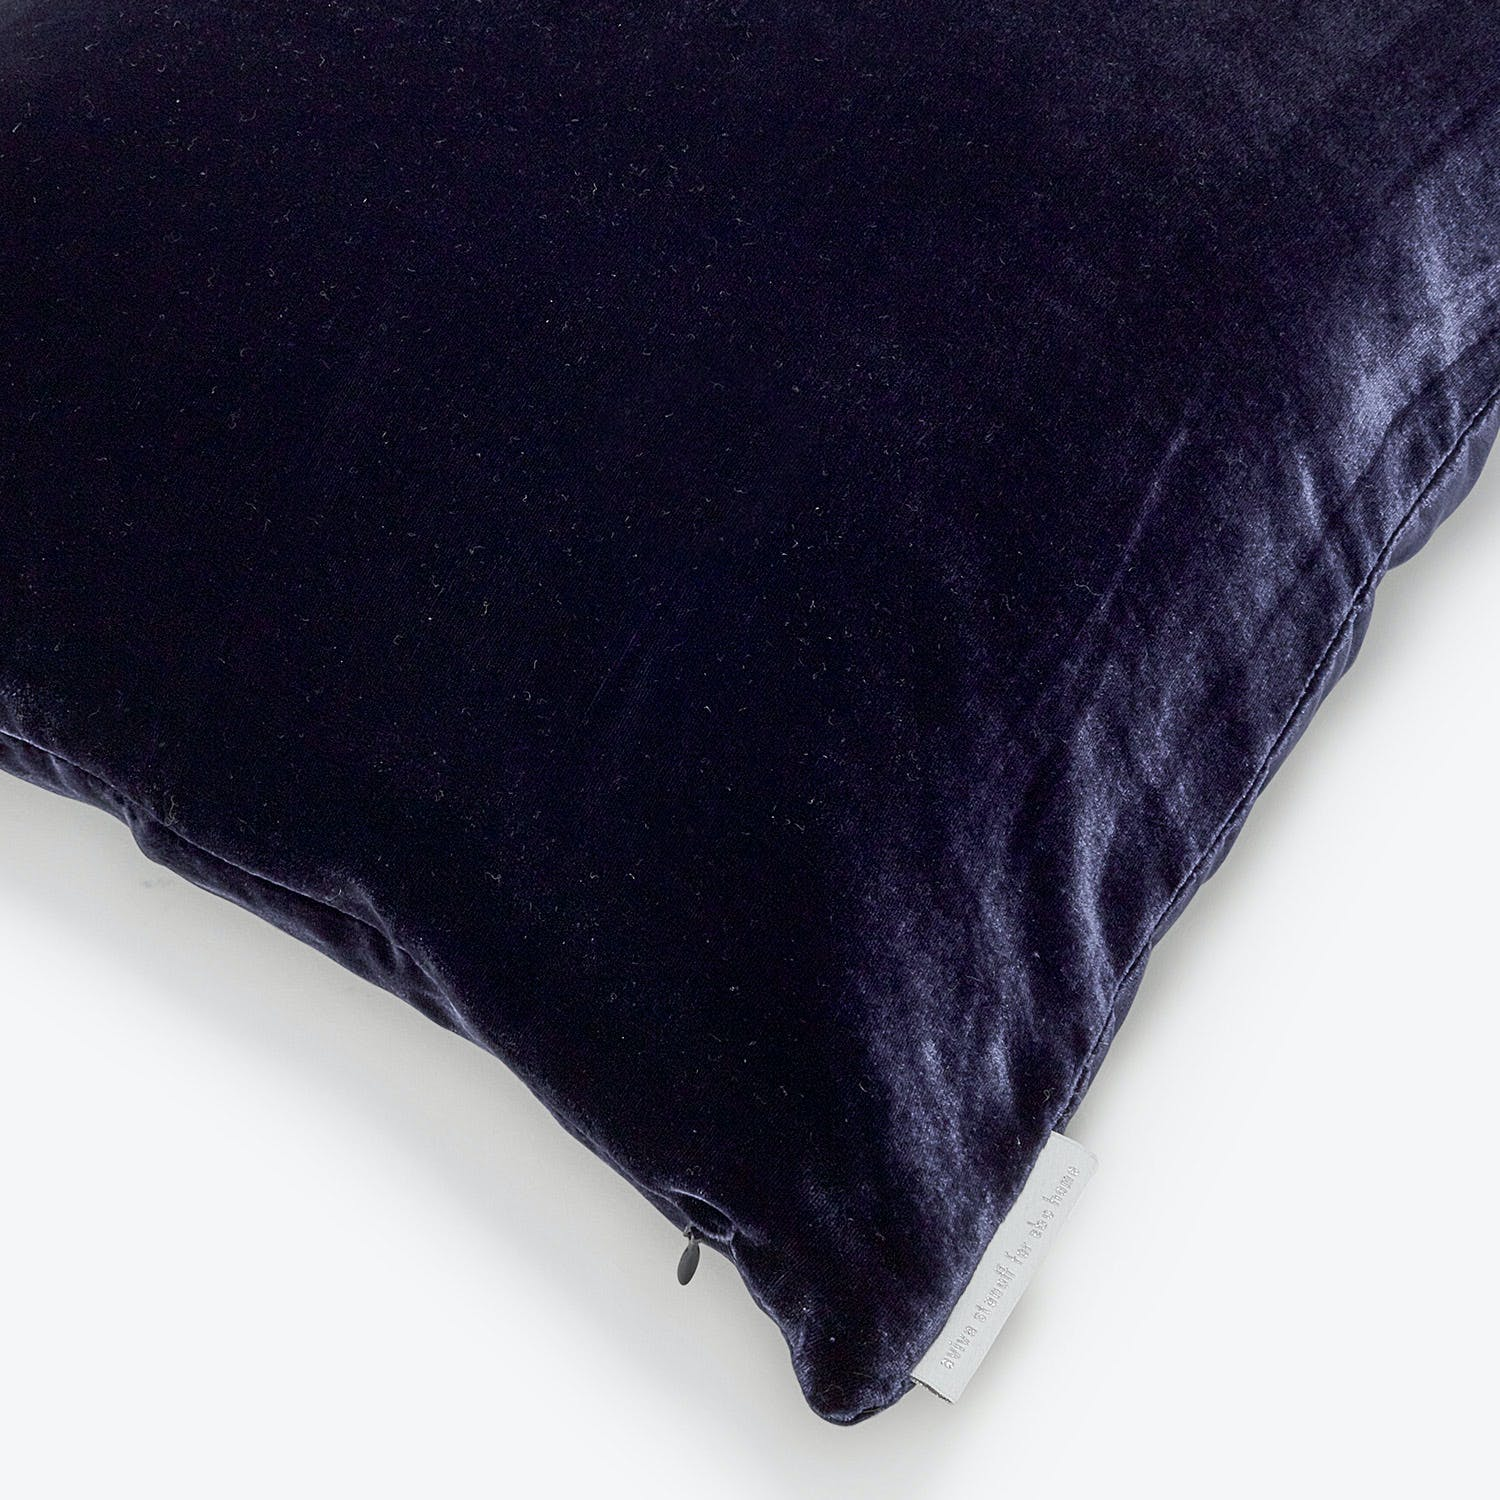 Aviva Stanoff Velvet Pillow Indigo - Medium